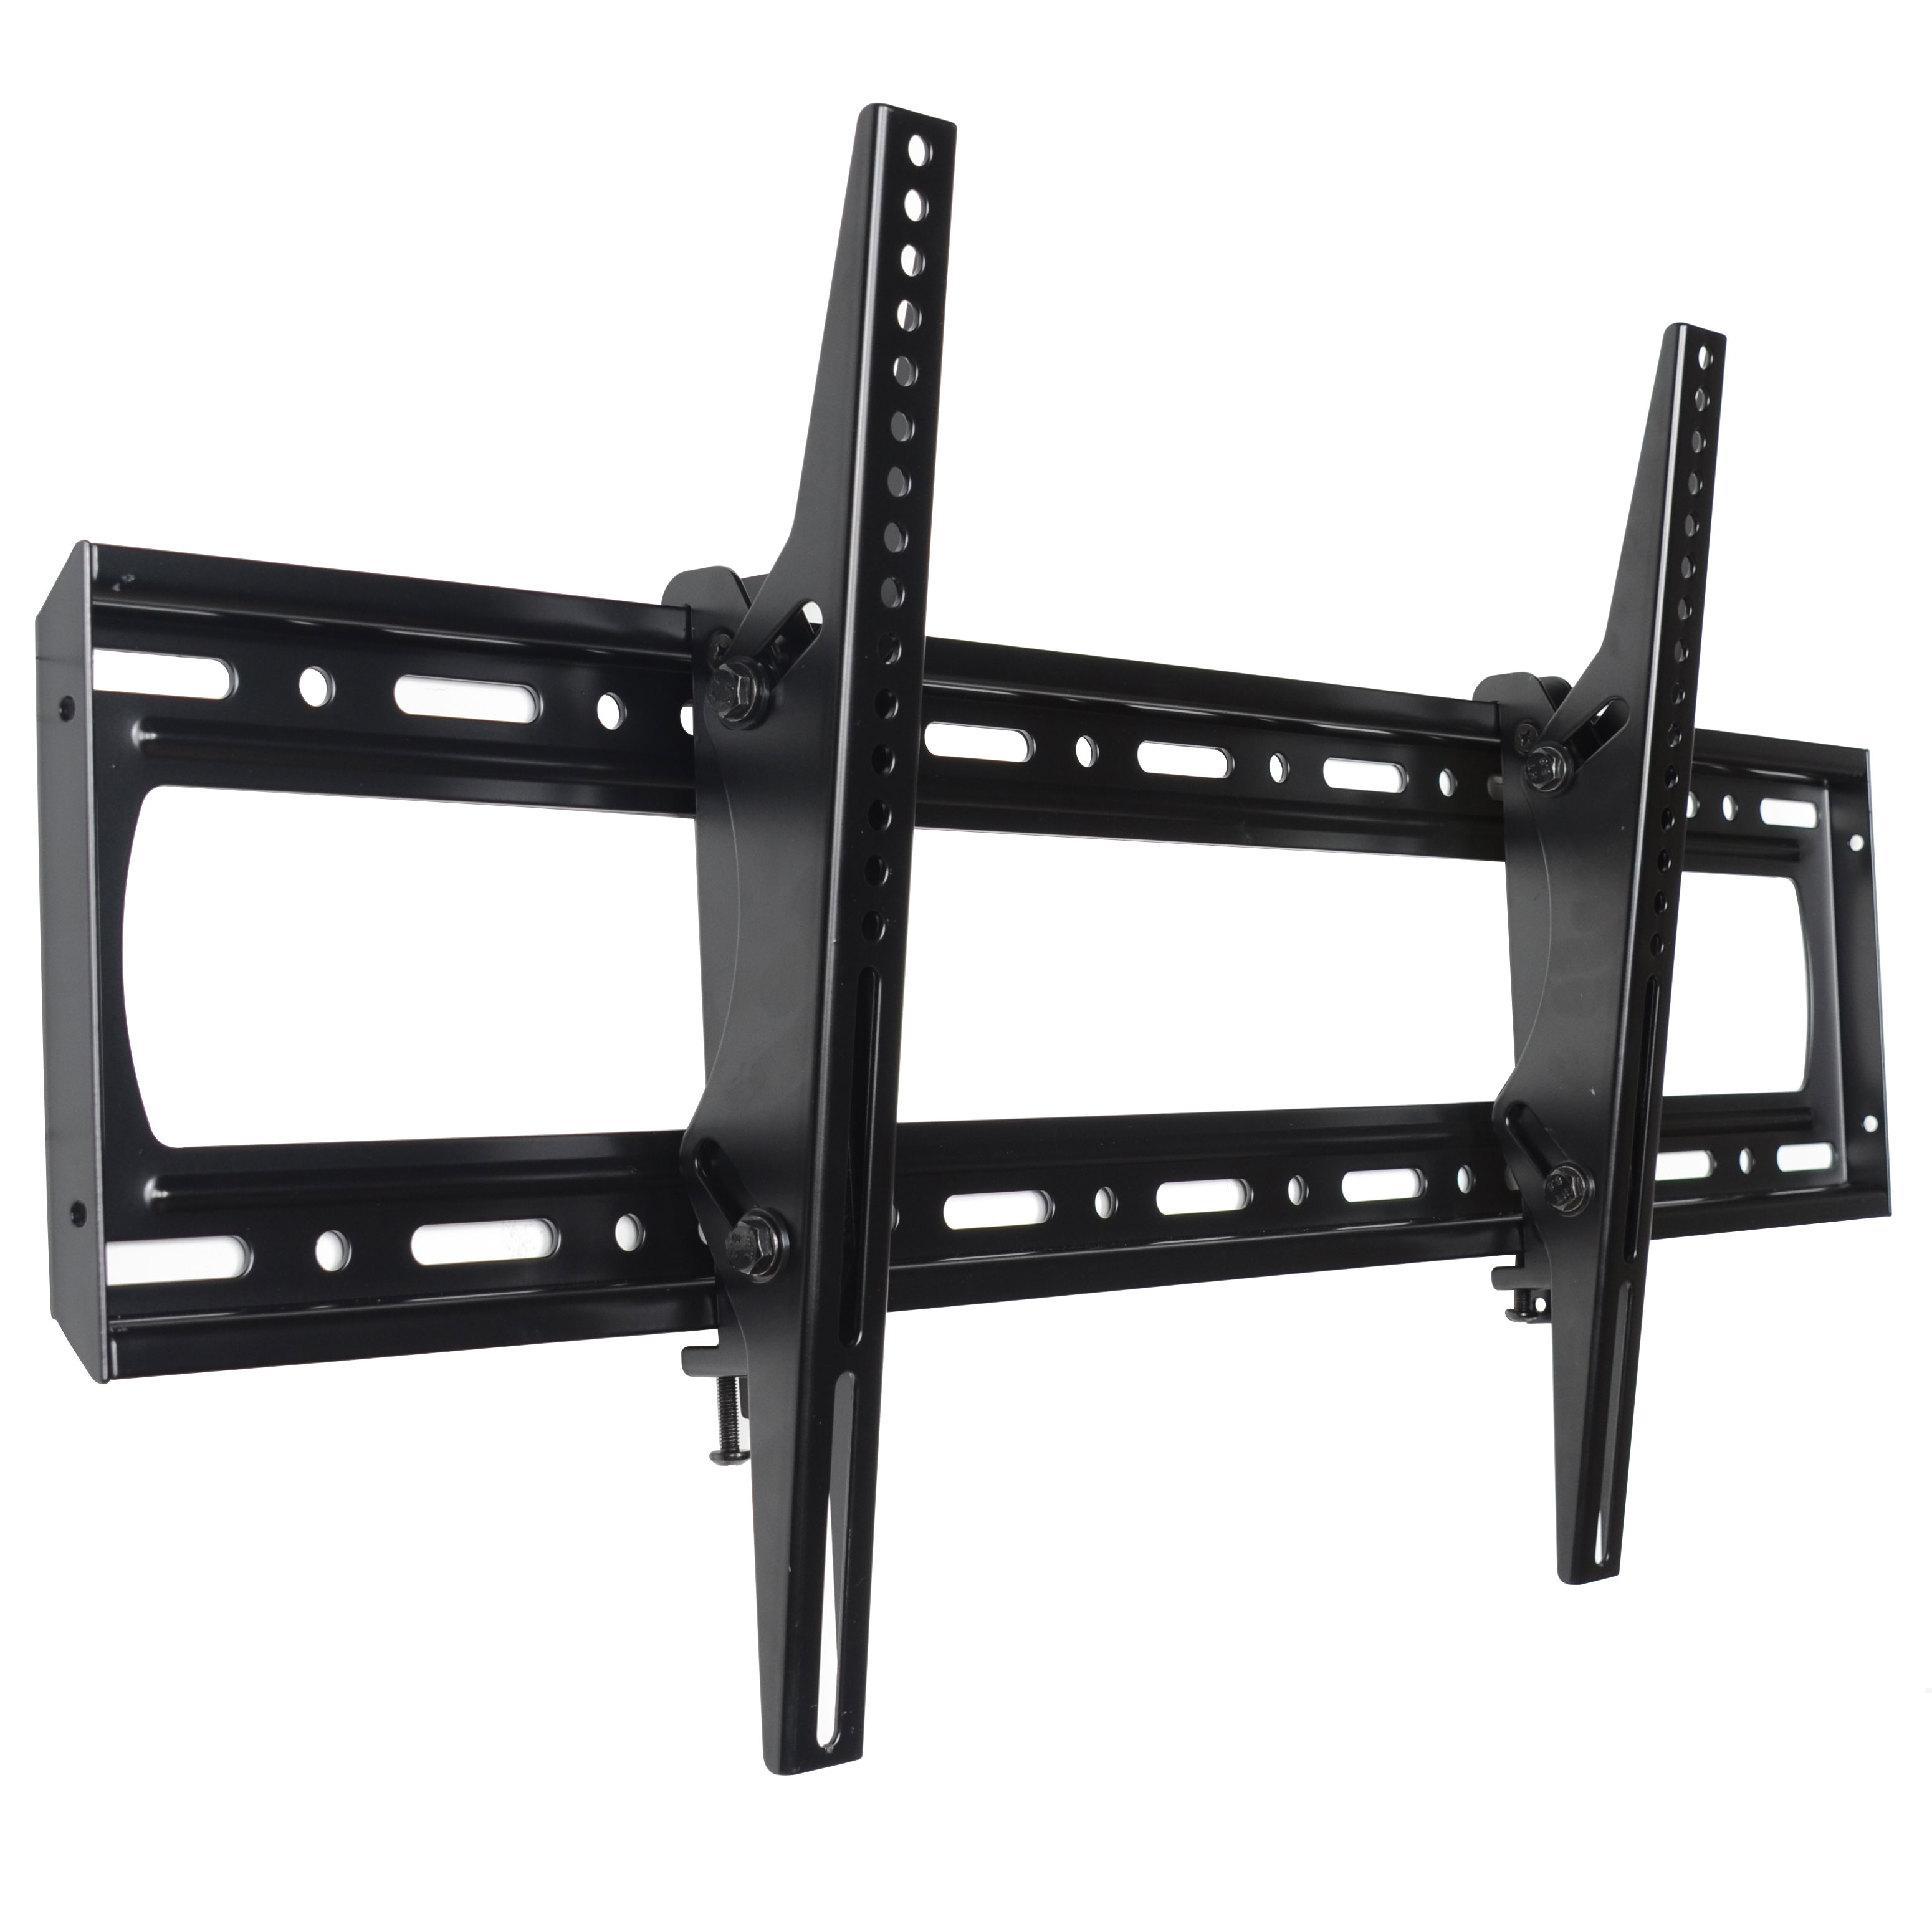 "VideoSecu Large Tilt TV Wall Mount for Most 60 65 70 75 80 85"" LCD LED Plasma HDTV Heavy Duty Load Capacity 220lbs C06"